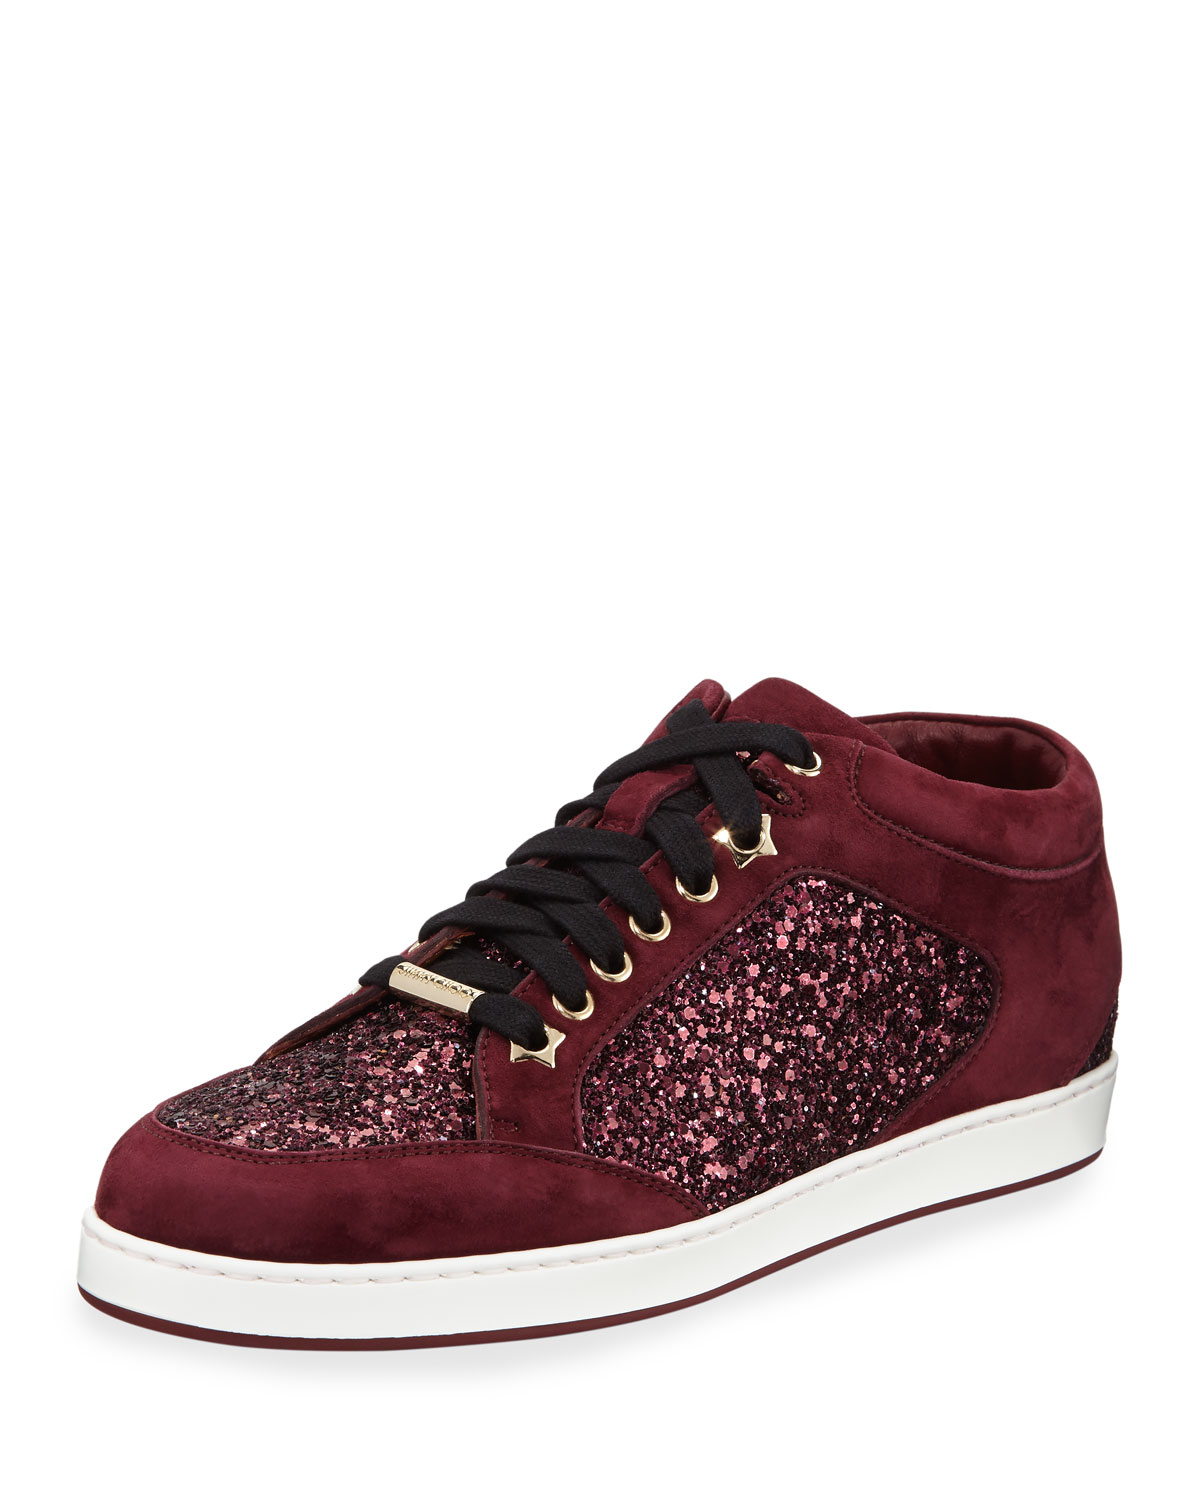 02f69cfa21 Jimmy Choo Miami Glitter Low-Top Sneaker | Neiman Marcus